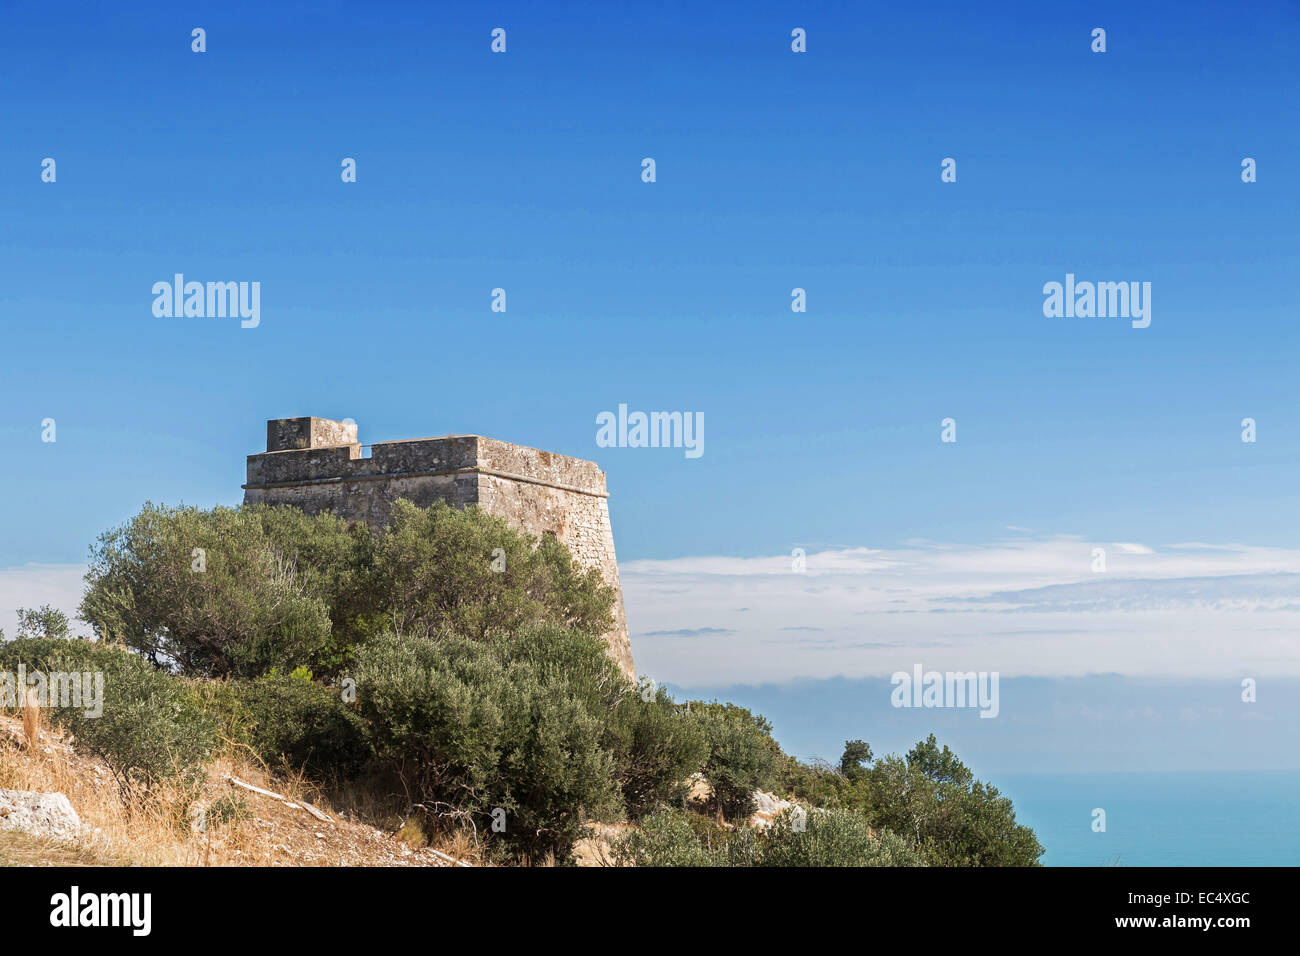 Mighty old watchtower on the Gargano coast - Stock Image